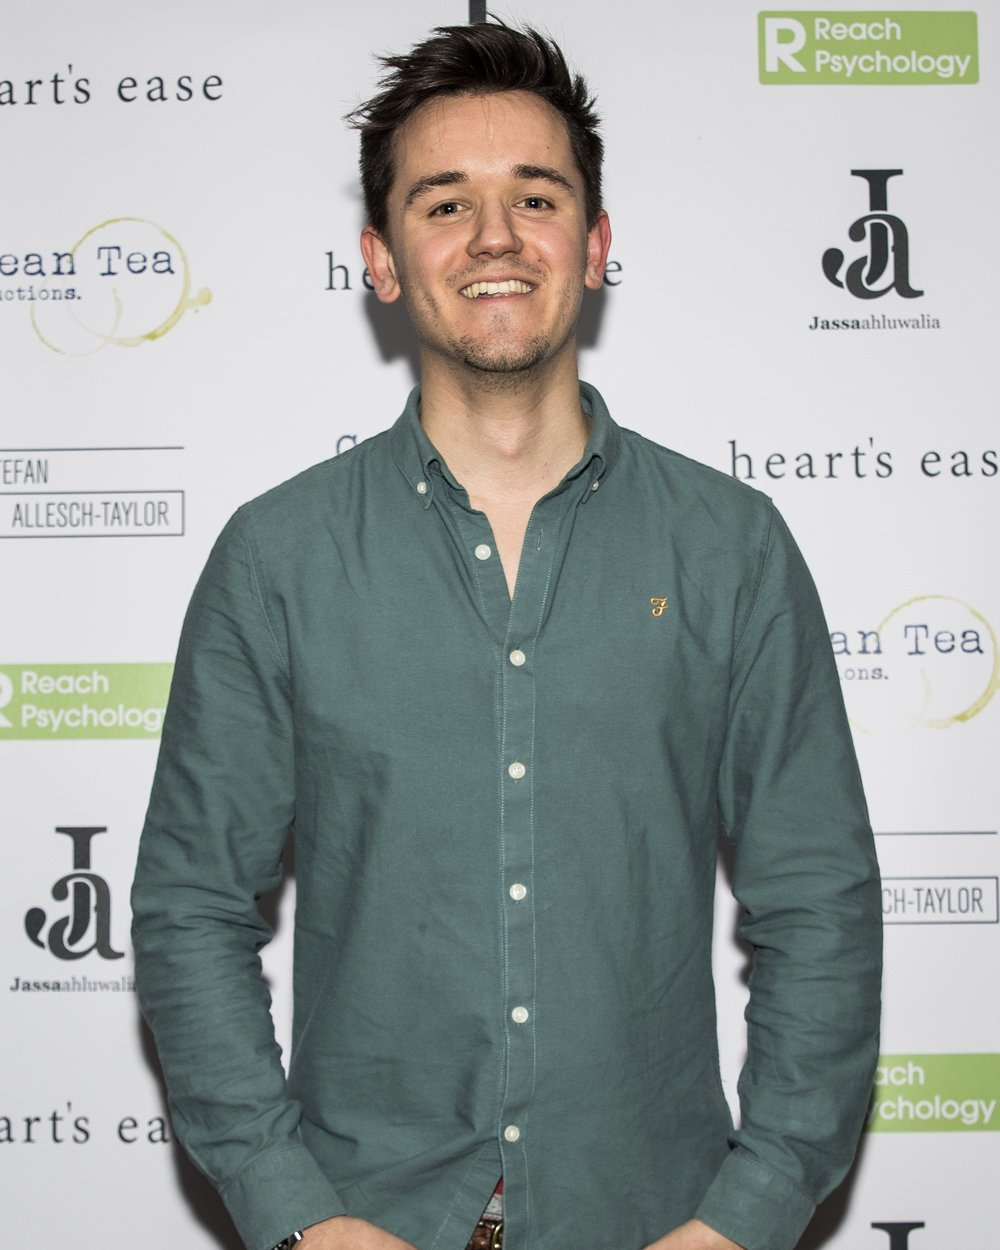 Olly Fawcett attends the cast and crew screening of Heart's Ease.